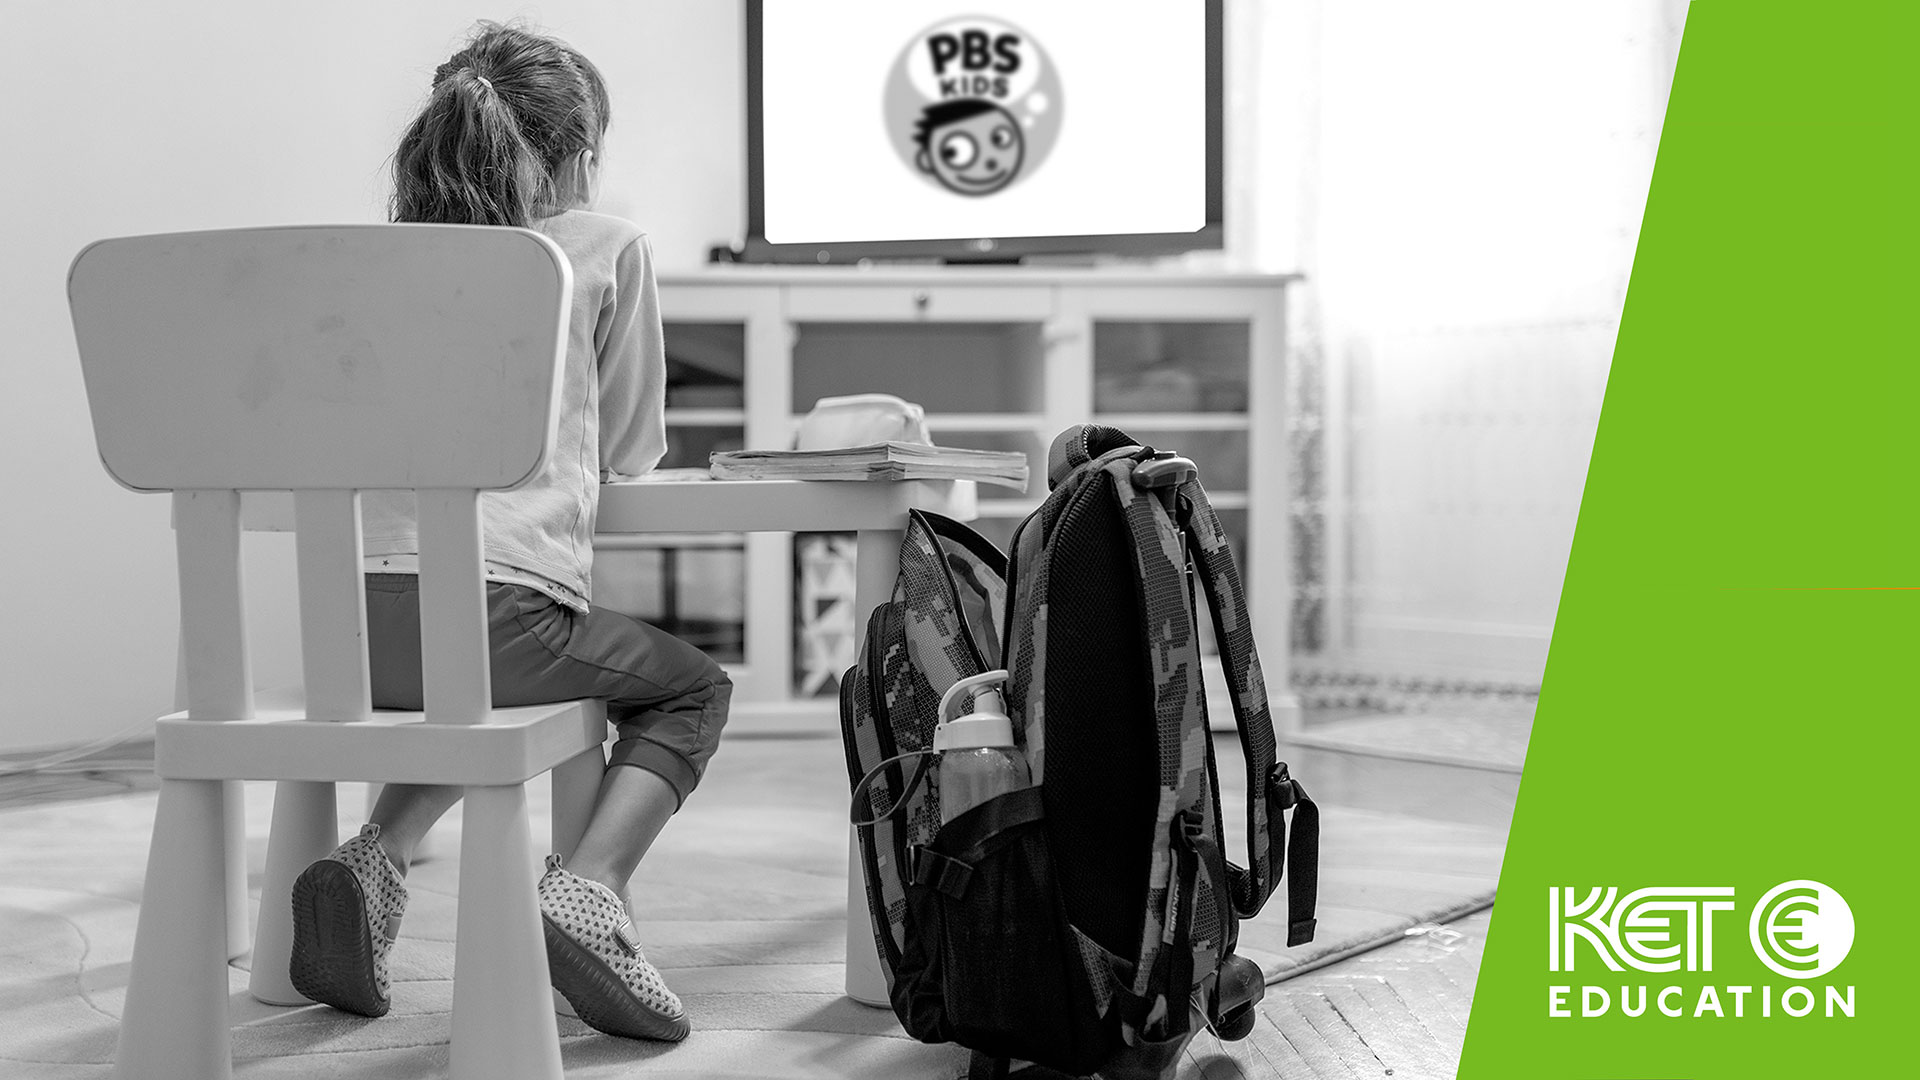 Through its commitment to offer curriculum-based entertainment, PBS KIDS provides shows, activities and support…